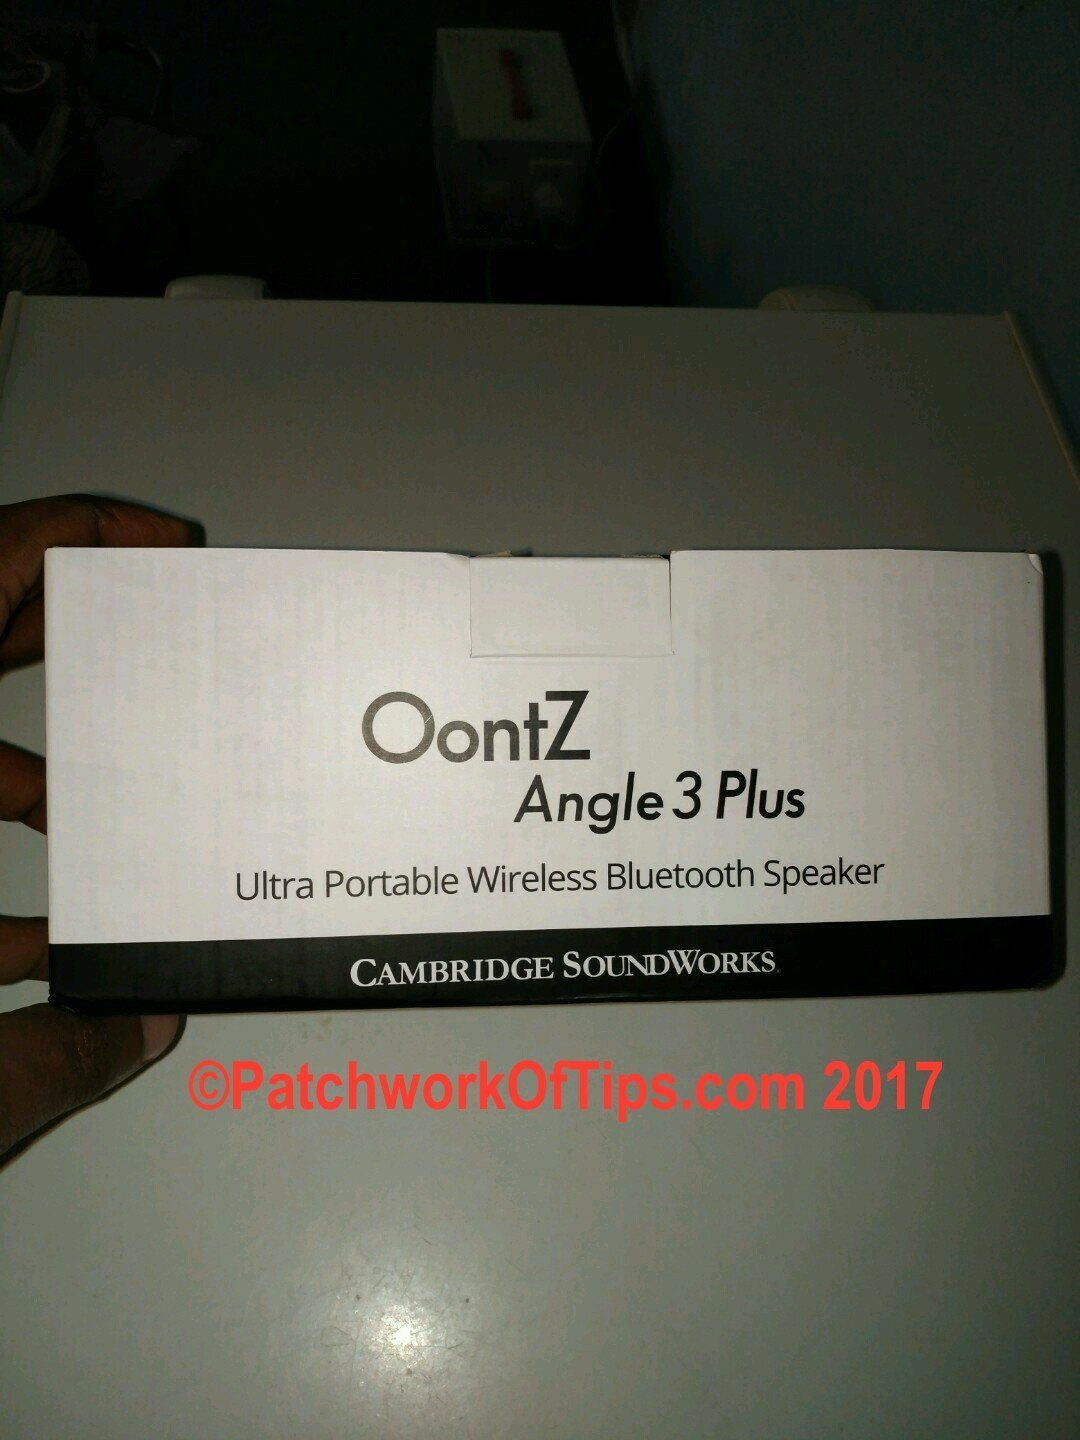 Oontz Angle 3 Plus